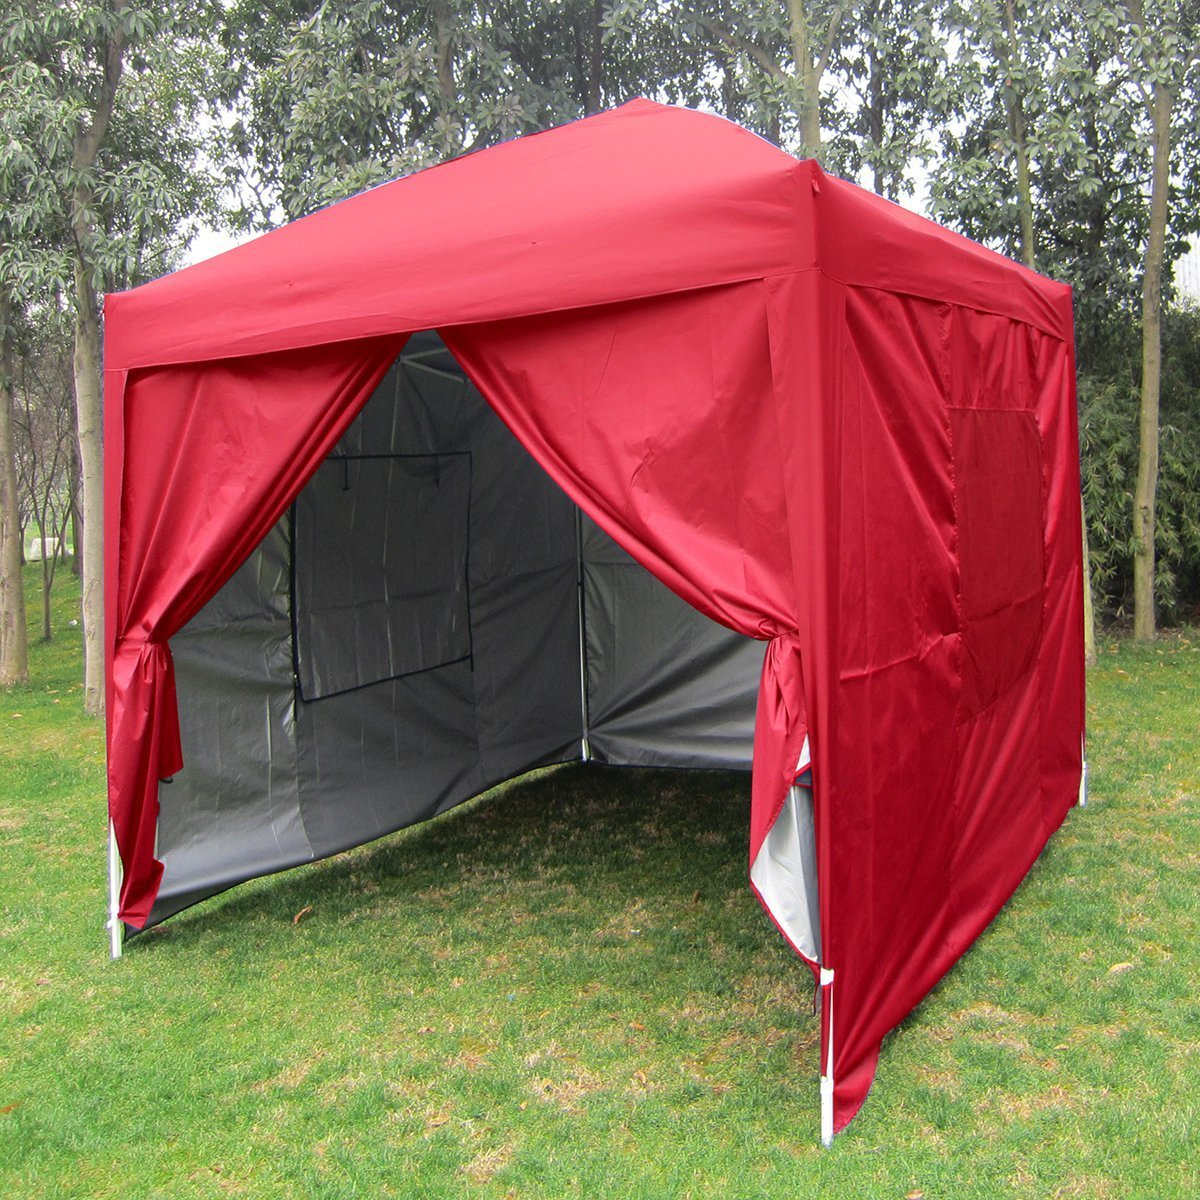 Big Sale!Quictent Privacy 8'x8' EZ Pop Up Party Tent Canopy Gazebo Mesh Curtain 100% Waterproof-7 Colors (Red) by